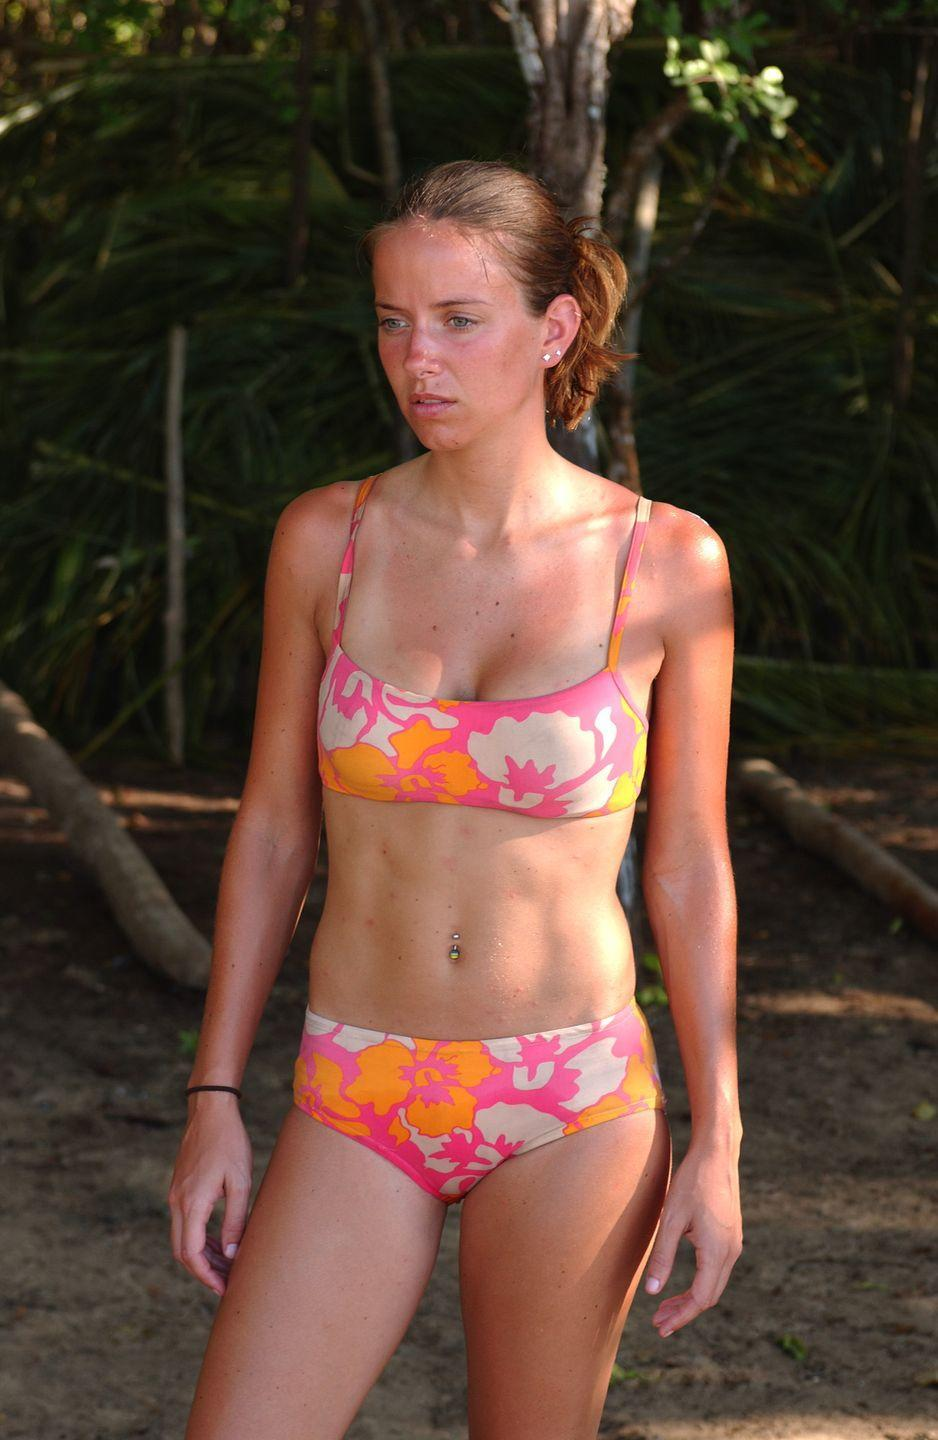 "<p><a href=""https://survivor.fandom.com/wiki/Amber_Mariano"" rel=""nofollow noopener"" target=""_blank"" data-ylk=""slk:Amber Brkich"" class=""link rapid-noclick-resp"">Amber Brkich</a> competed on <em>Survivor: The Australian Outback</em>, <em>Survivor: All-Stars </em>(which she won), and <em>Survivor: Winners at War.</em></p>"